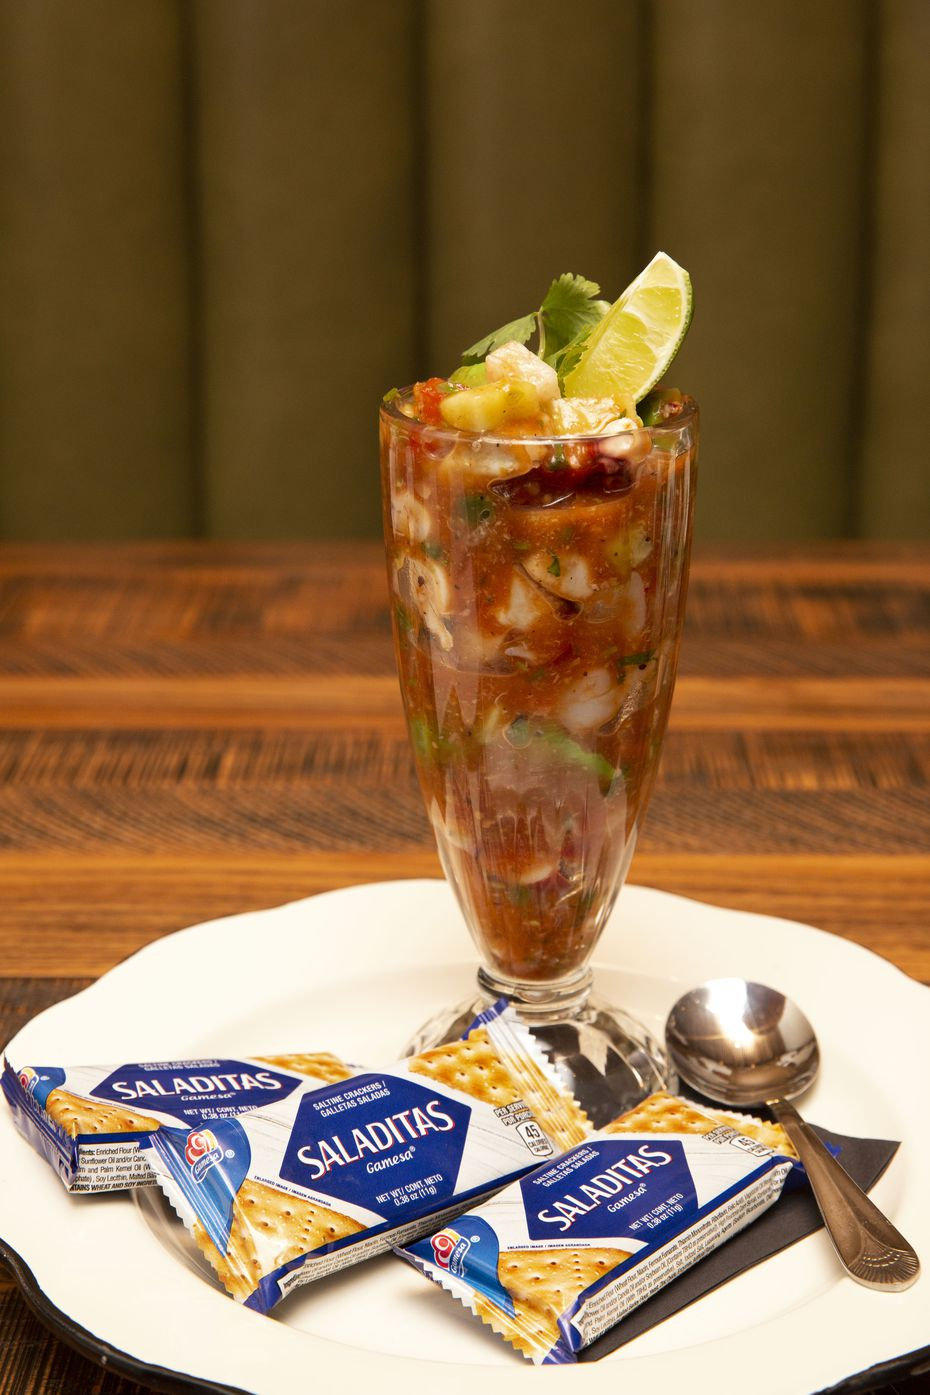 The Mexican shrimp cocktail includes Gulf shrimp, octopus, lump crab, avocado and jicama in a savory Clamato dressing.